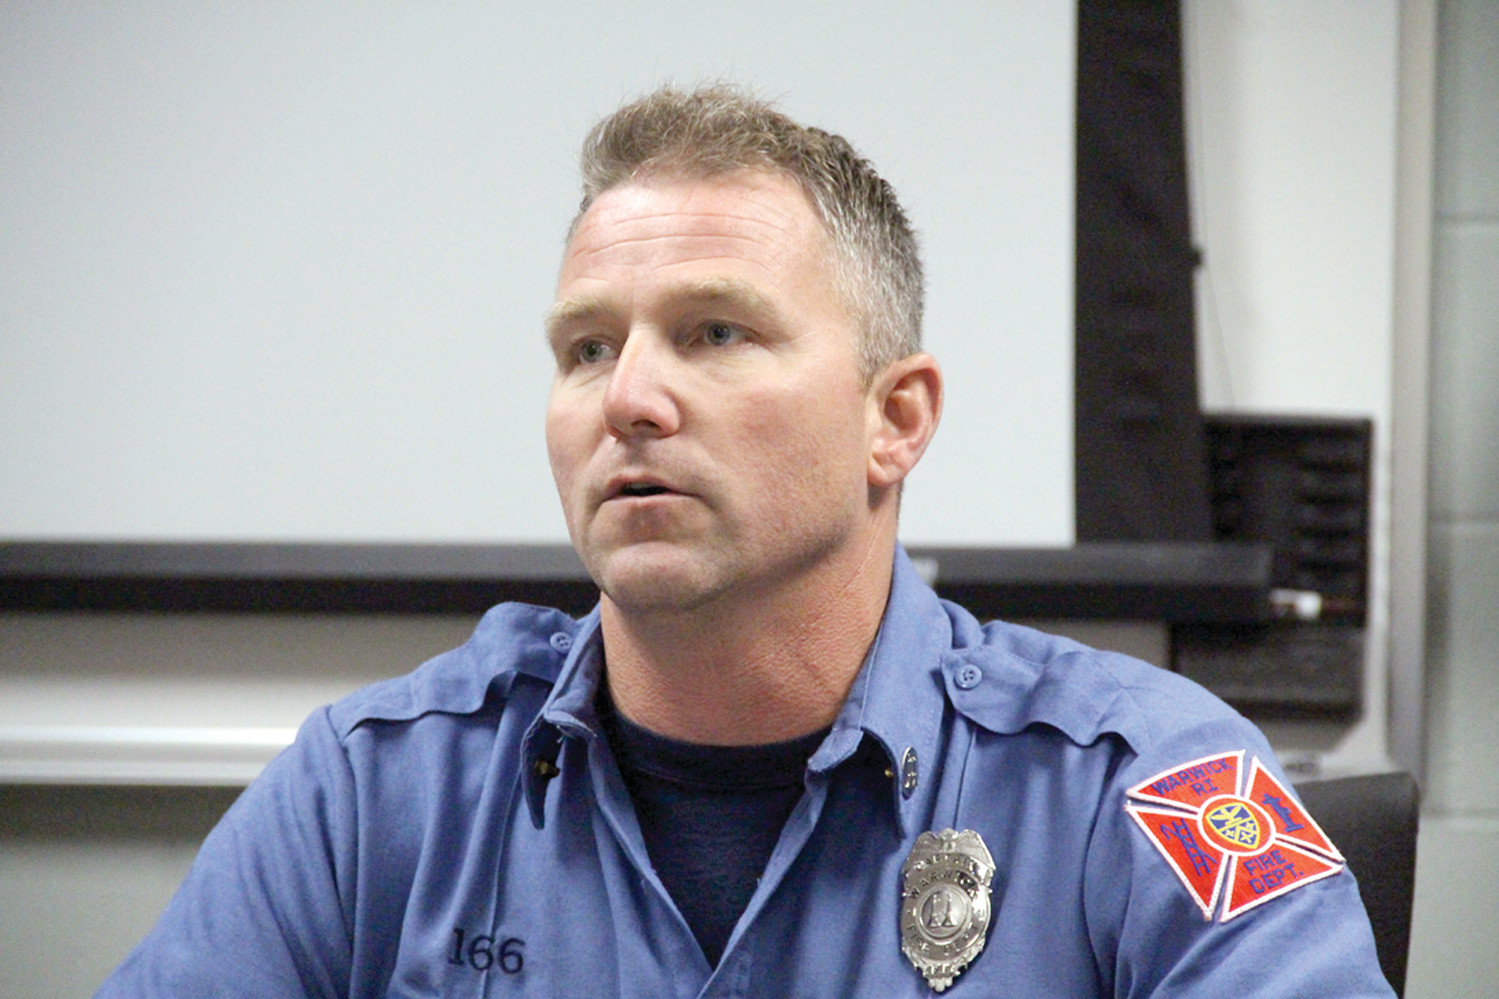 HE'LL BE TRAINING: Captain Michael Mernick of the division of training talked about the rigorous 18-week training program recruits must complete to become probationary firefighters.